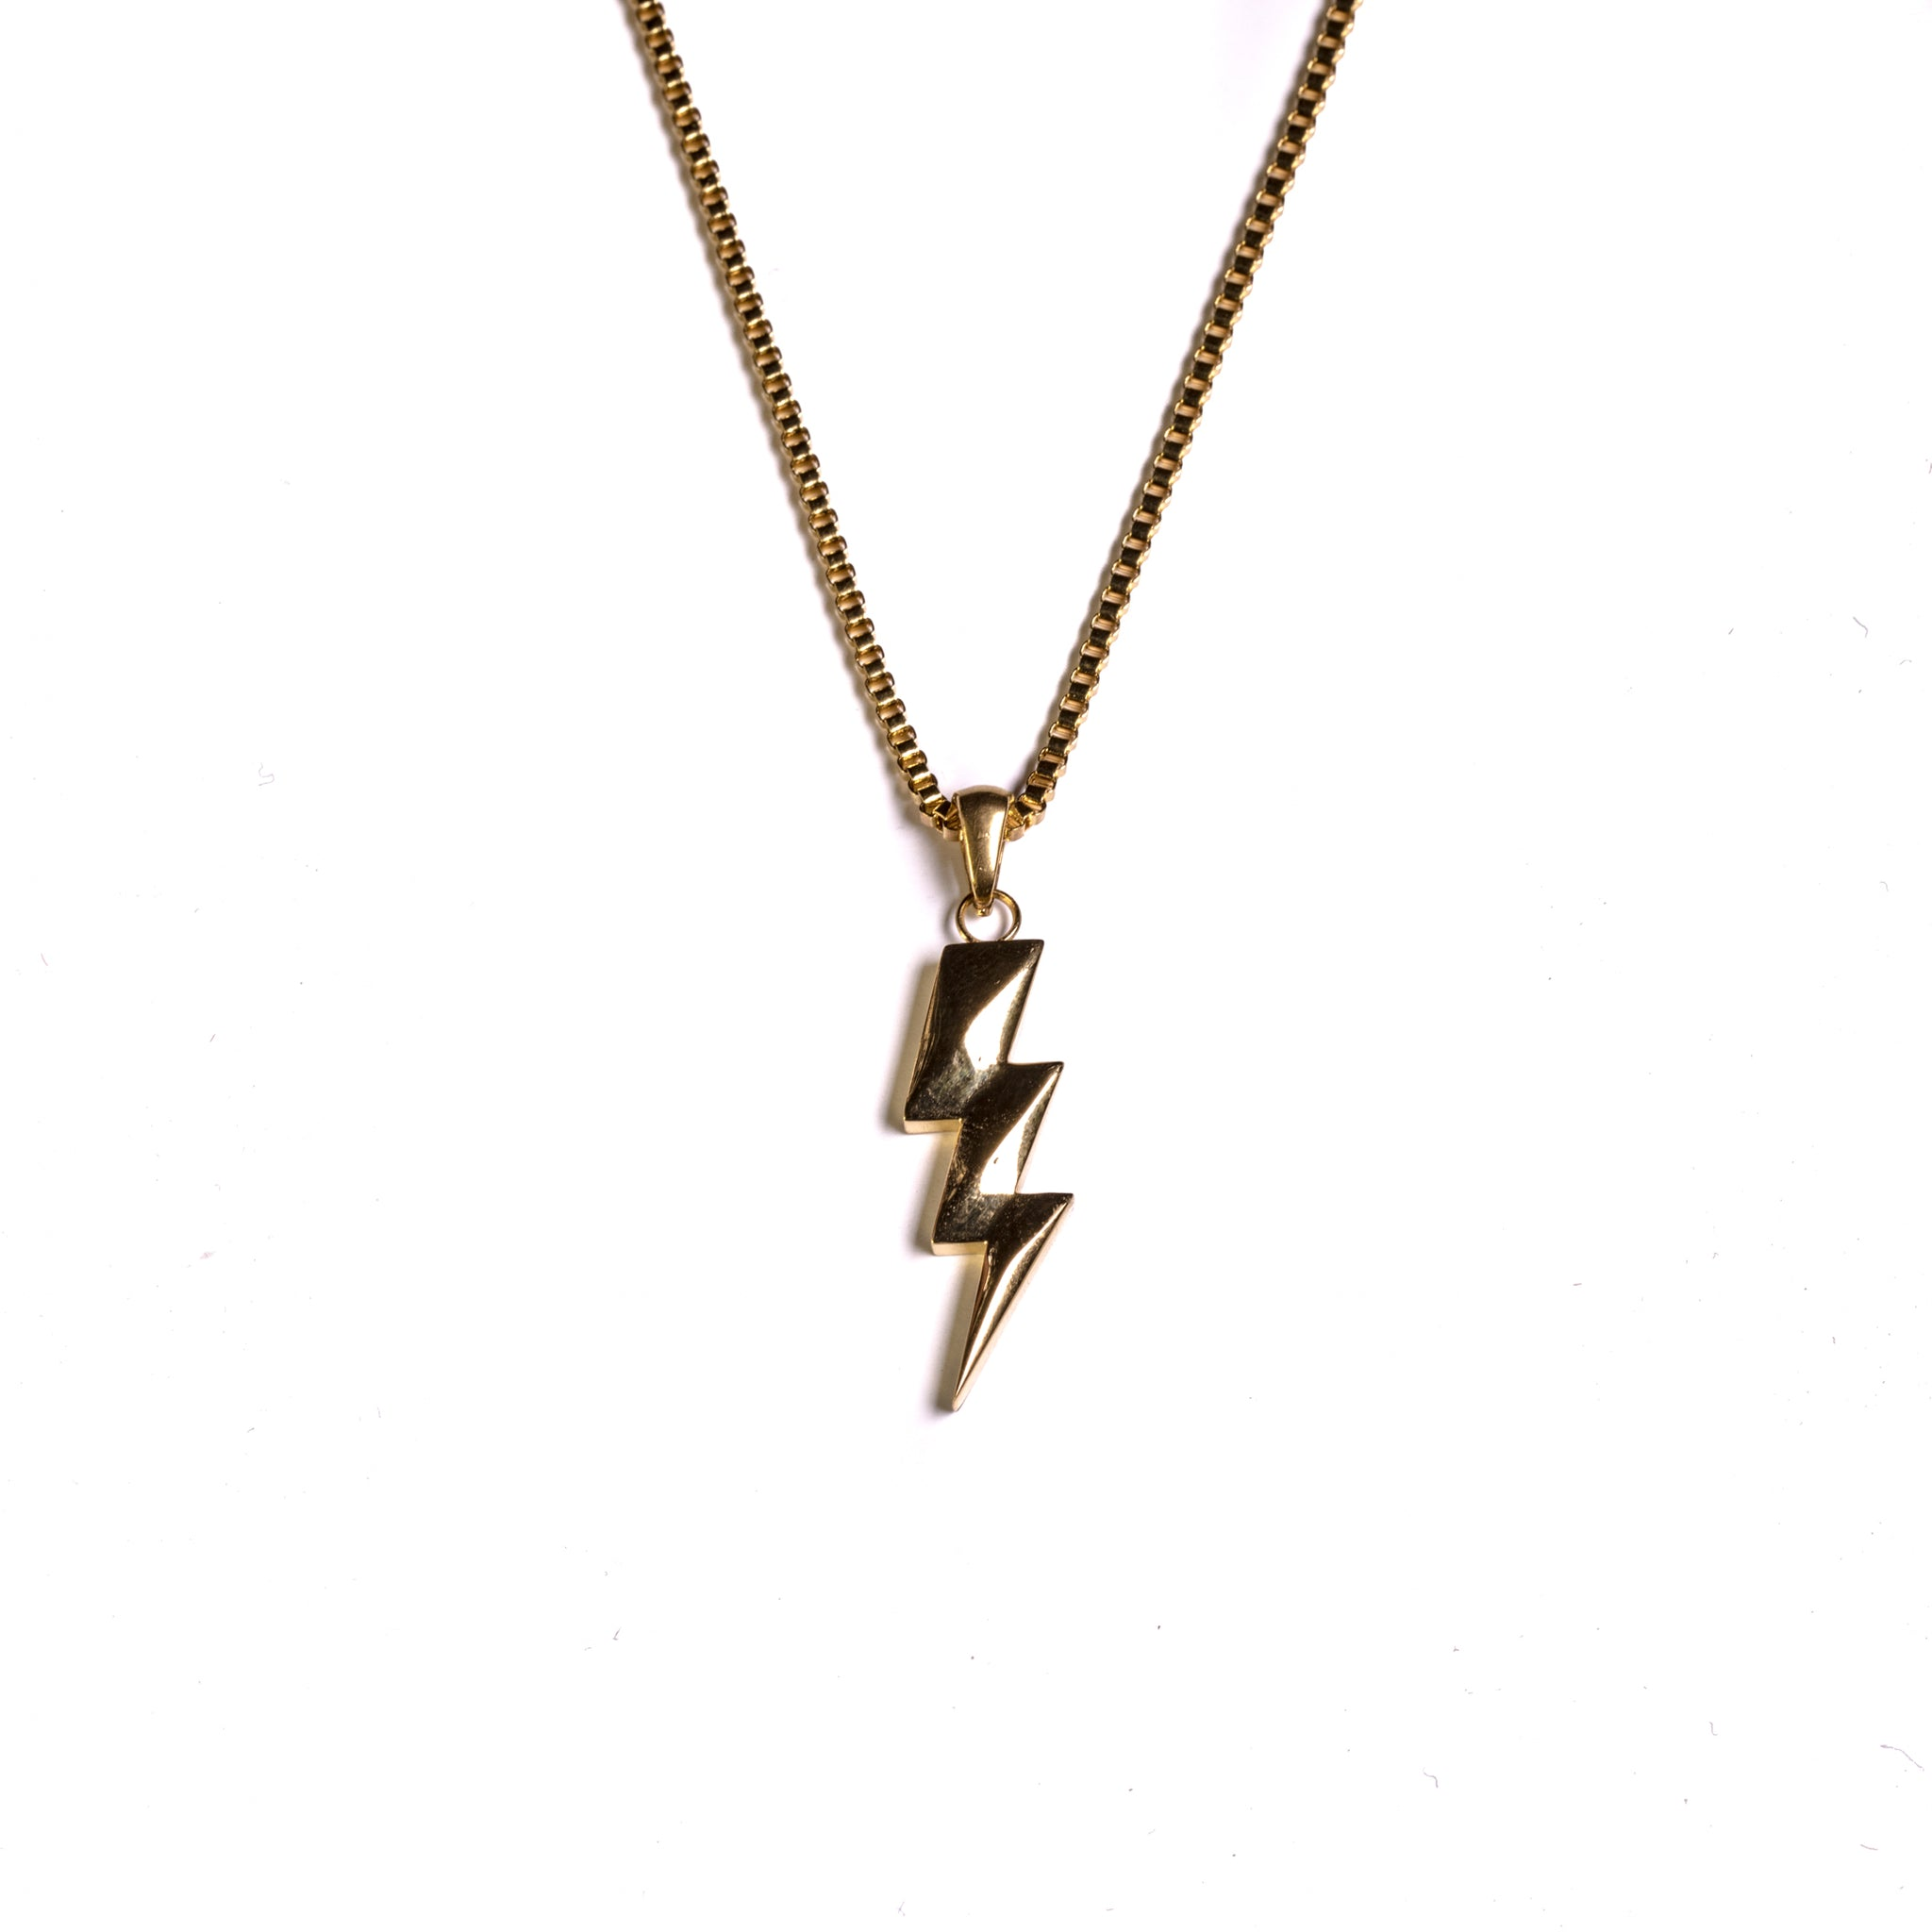 Flash Bolt Pendant - ACCESSORIES, Golden Gilt, SNEAKER STUDIO, GOLDEN GILT, DESIGN BY TSS